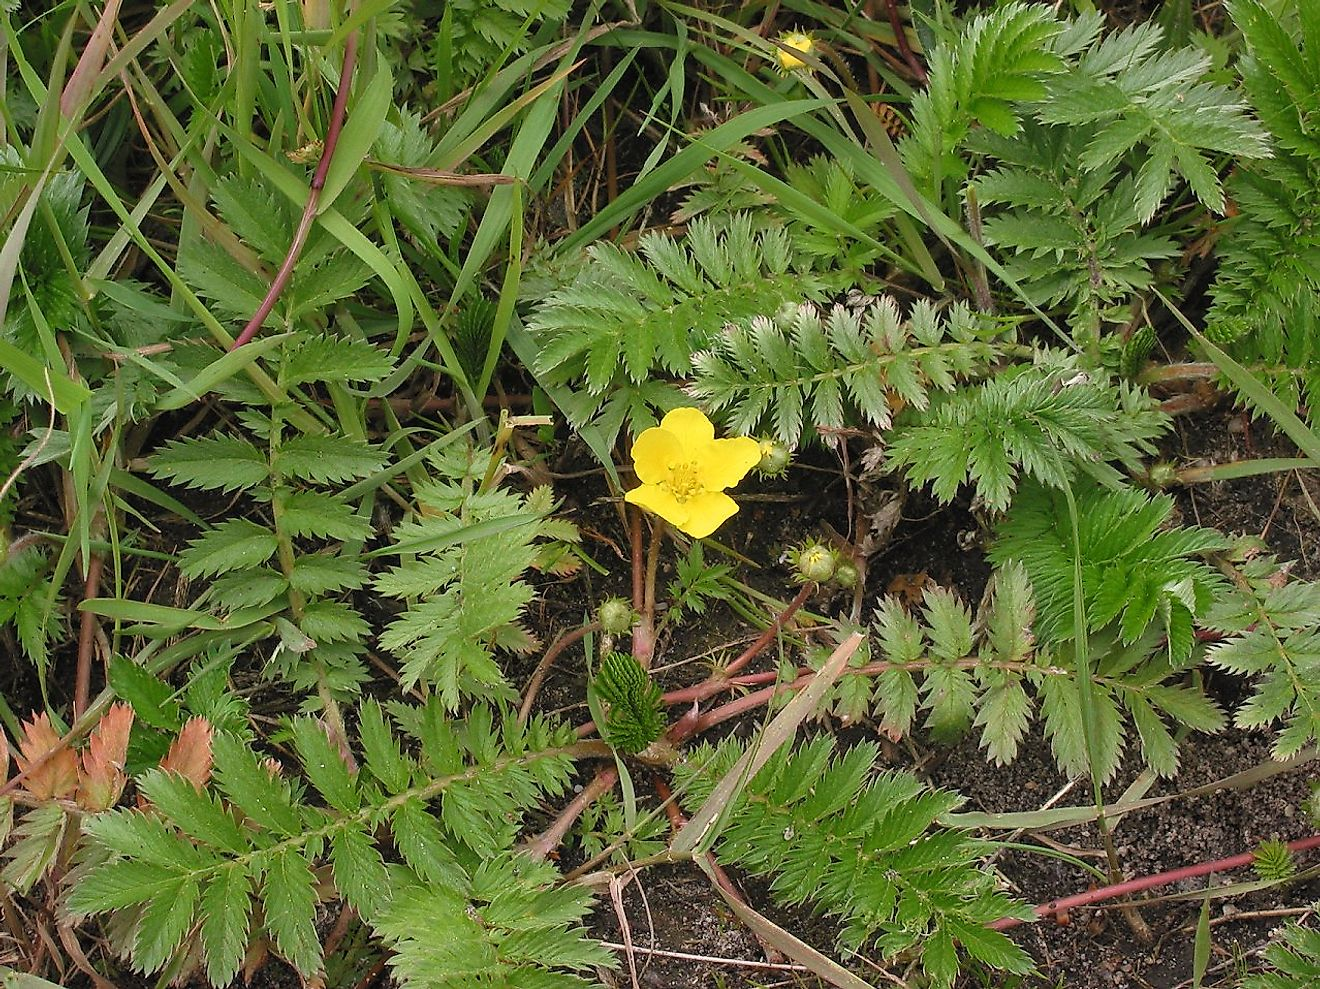 Common Silverweed (Argentina anserina) picture showing red stolons. Image credit: Rasbak/Wikimedia.org